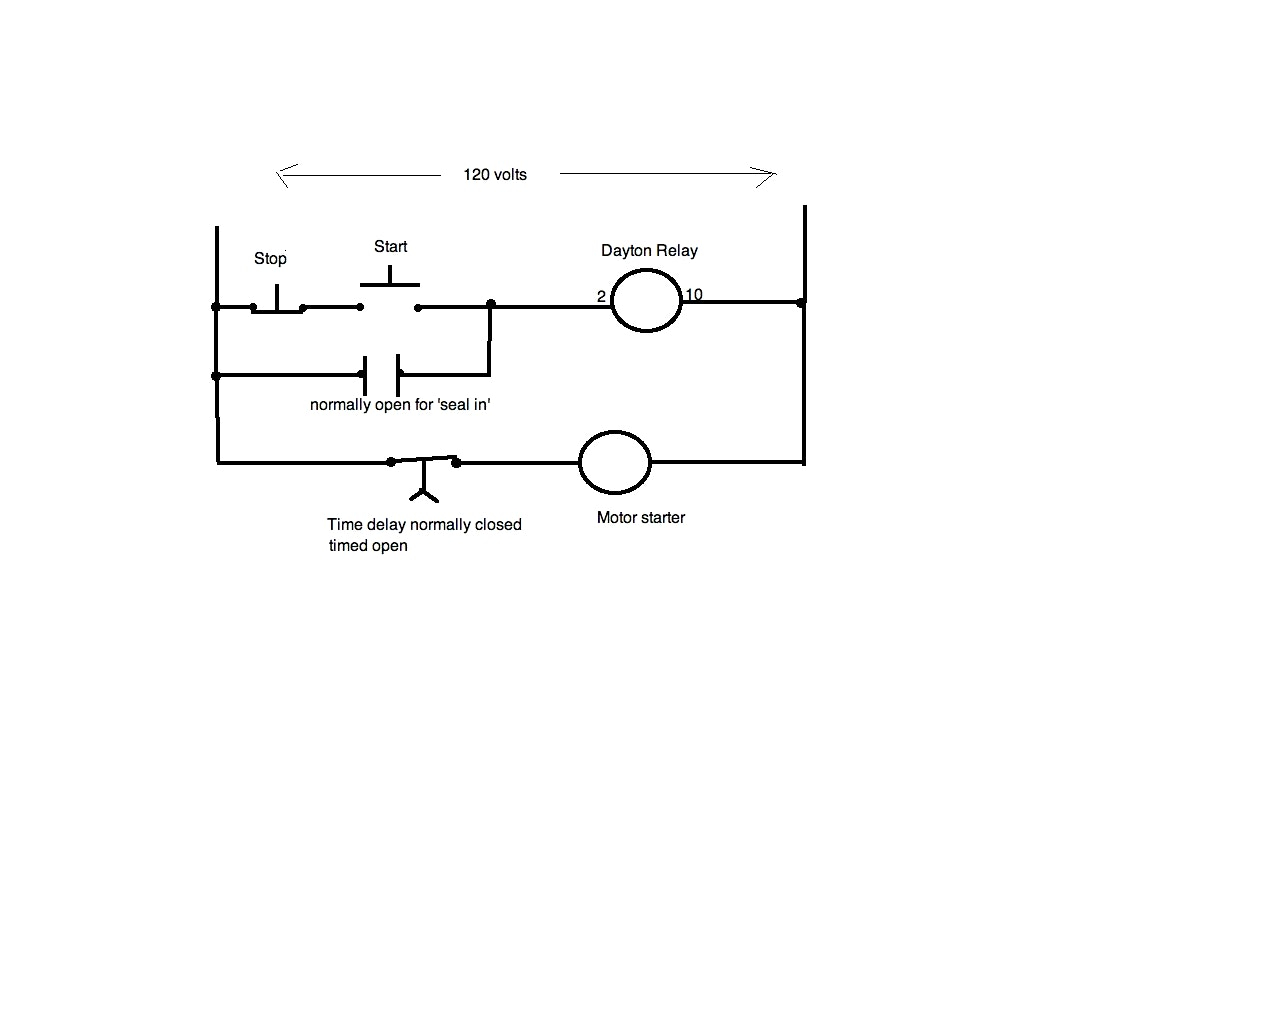 dayton time delay relay wiring diagram Download-foxy wiring diagram for time delay relay the symbol daytontimer full size with motor symbol circuit 19-m